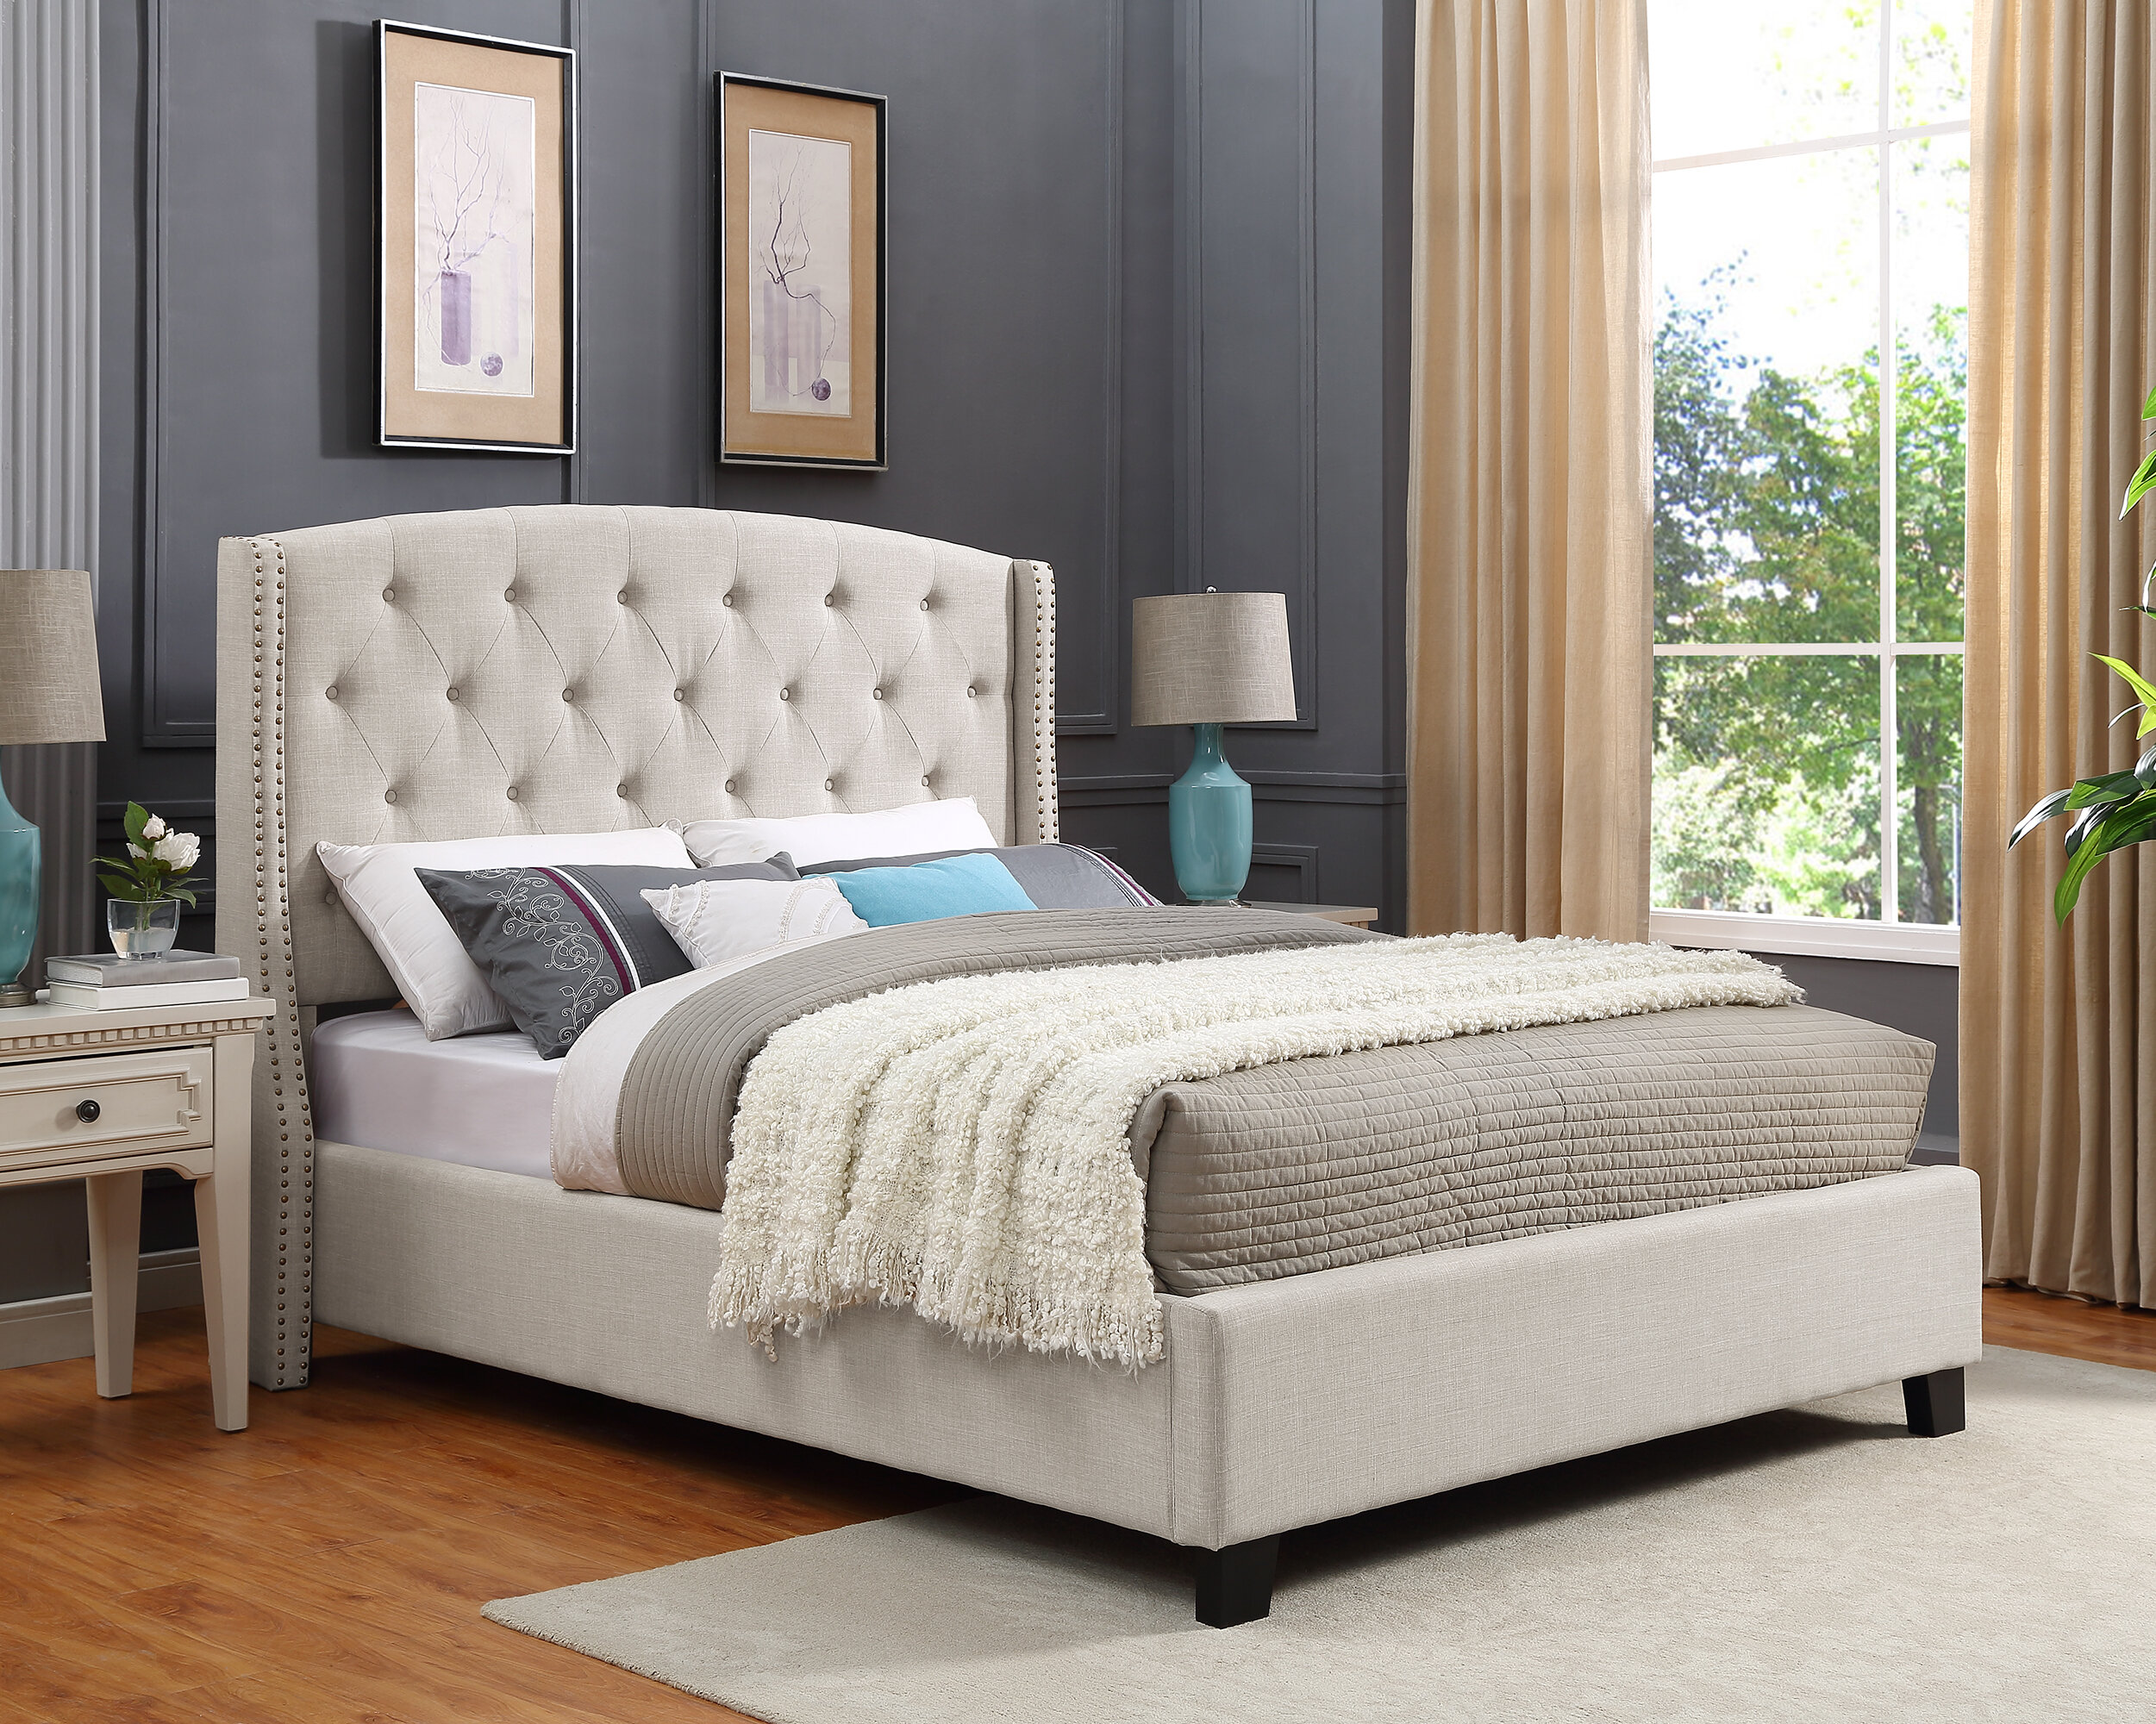 Darby Home Co Croce Tufted Upholstered Low Profile Standard Bed Reviews Wayfair